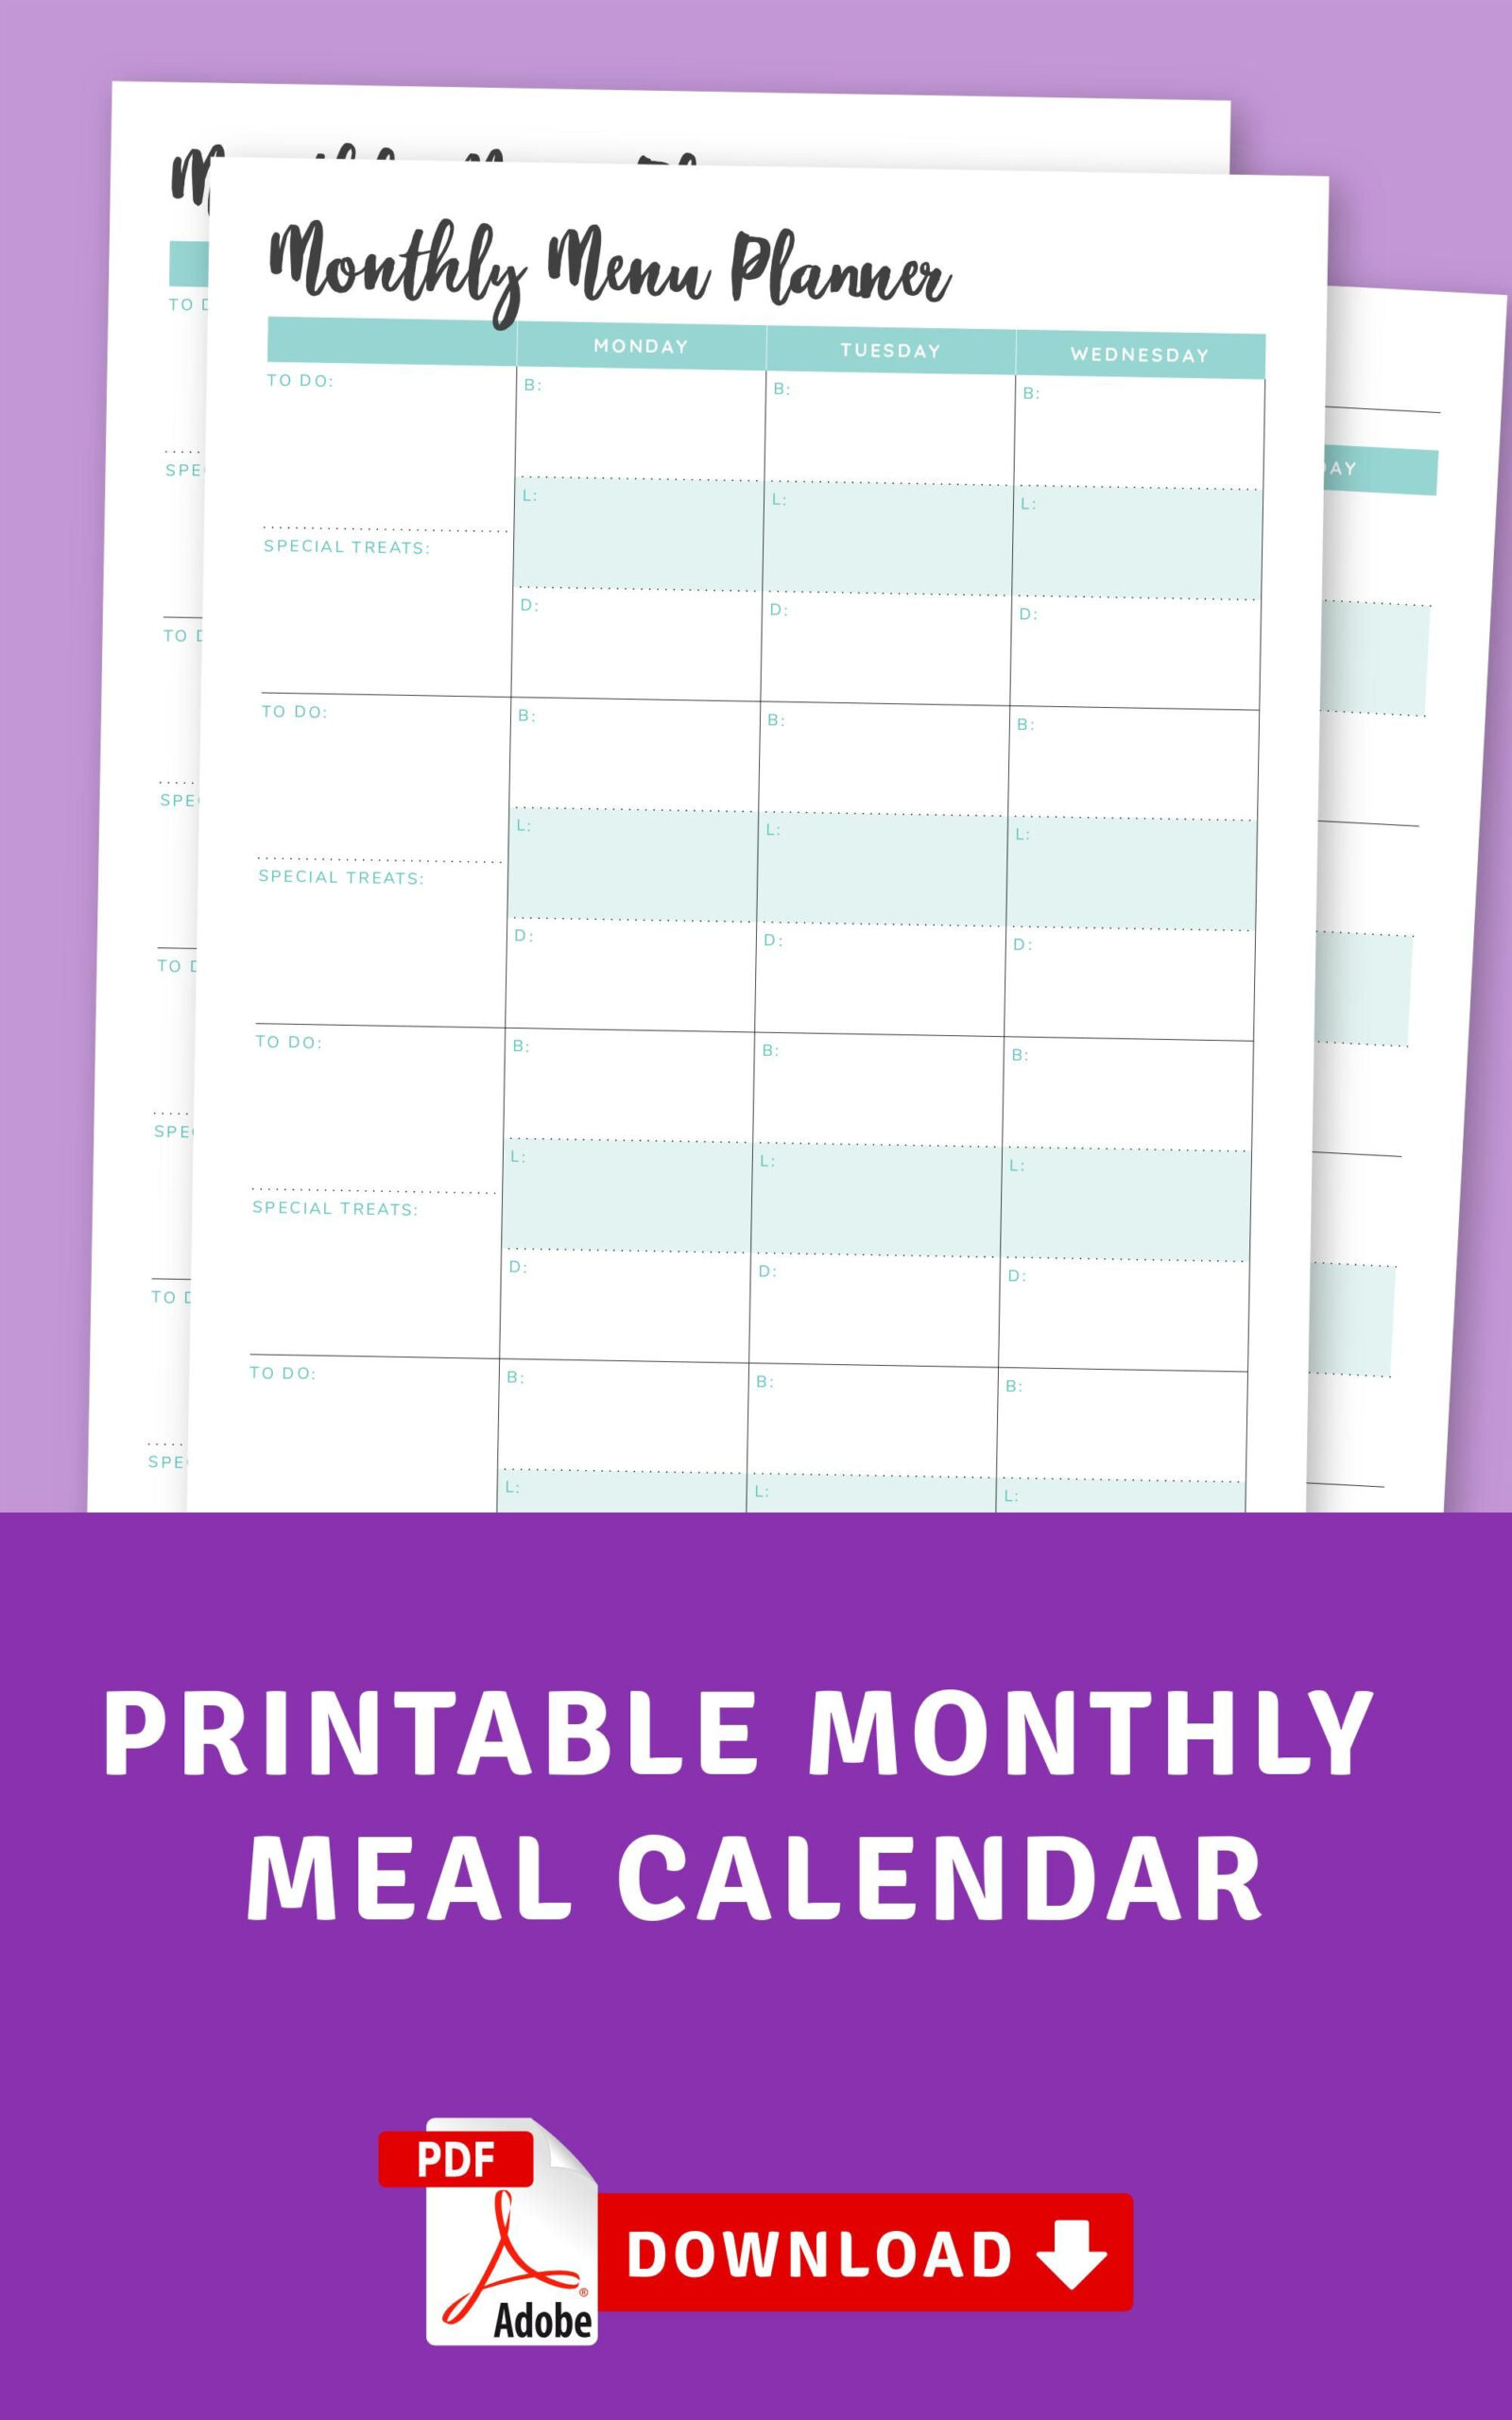 Monthly Meal Calendar   Monthly Menu Planner, Monthly Meal